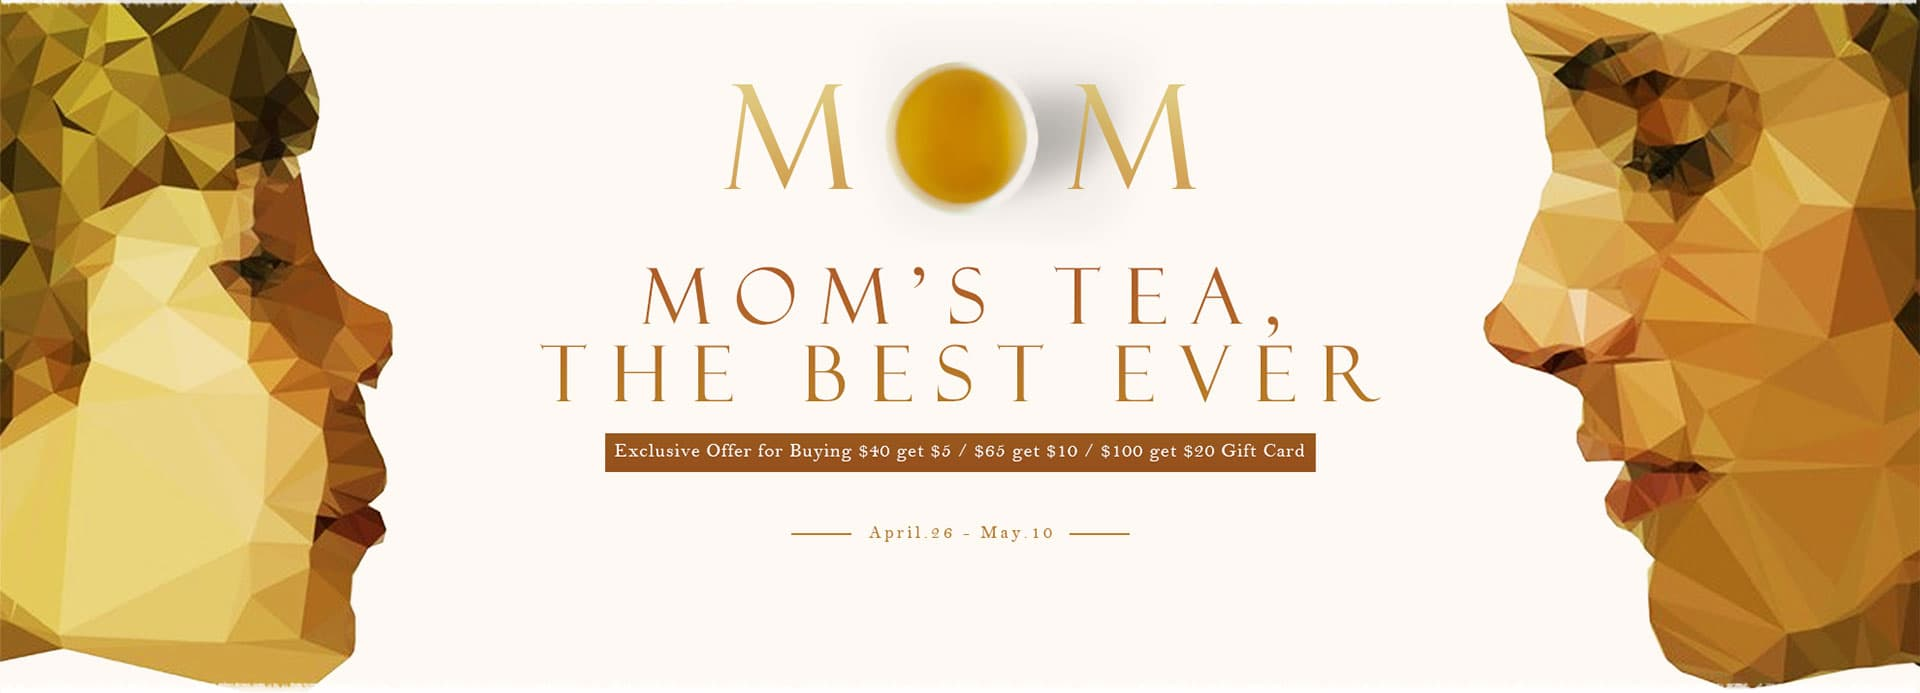 TeaVivre Mother's Day Promotion: Make Orders to Get Gift Cards